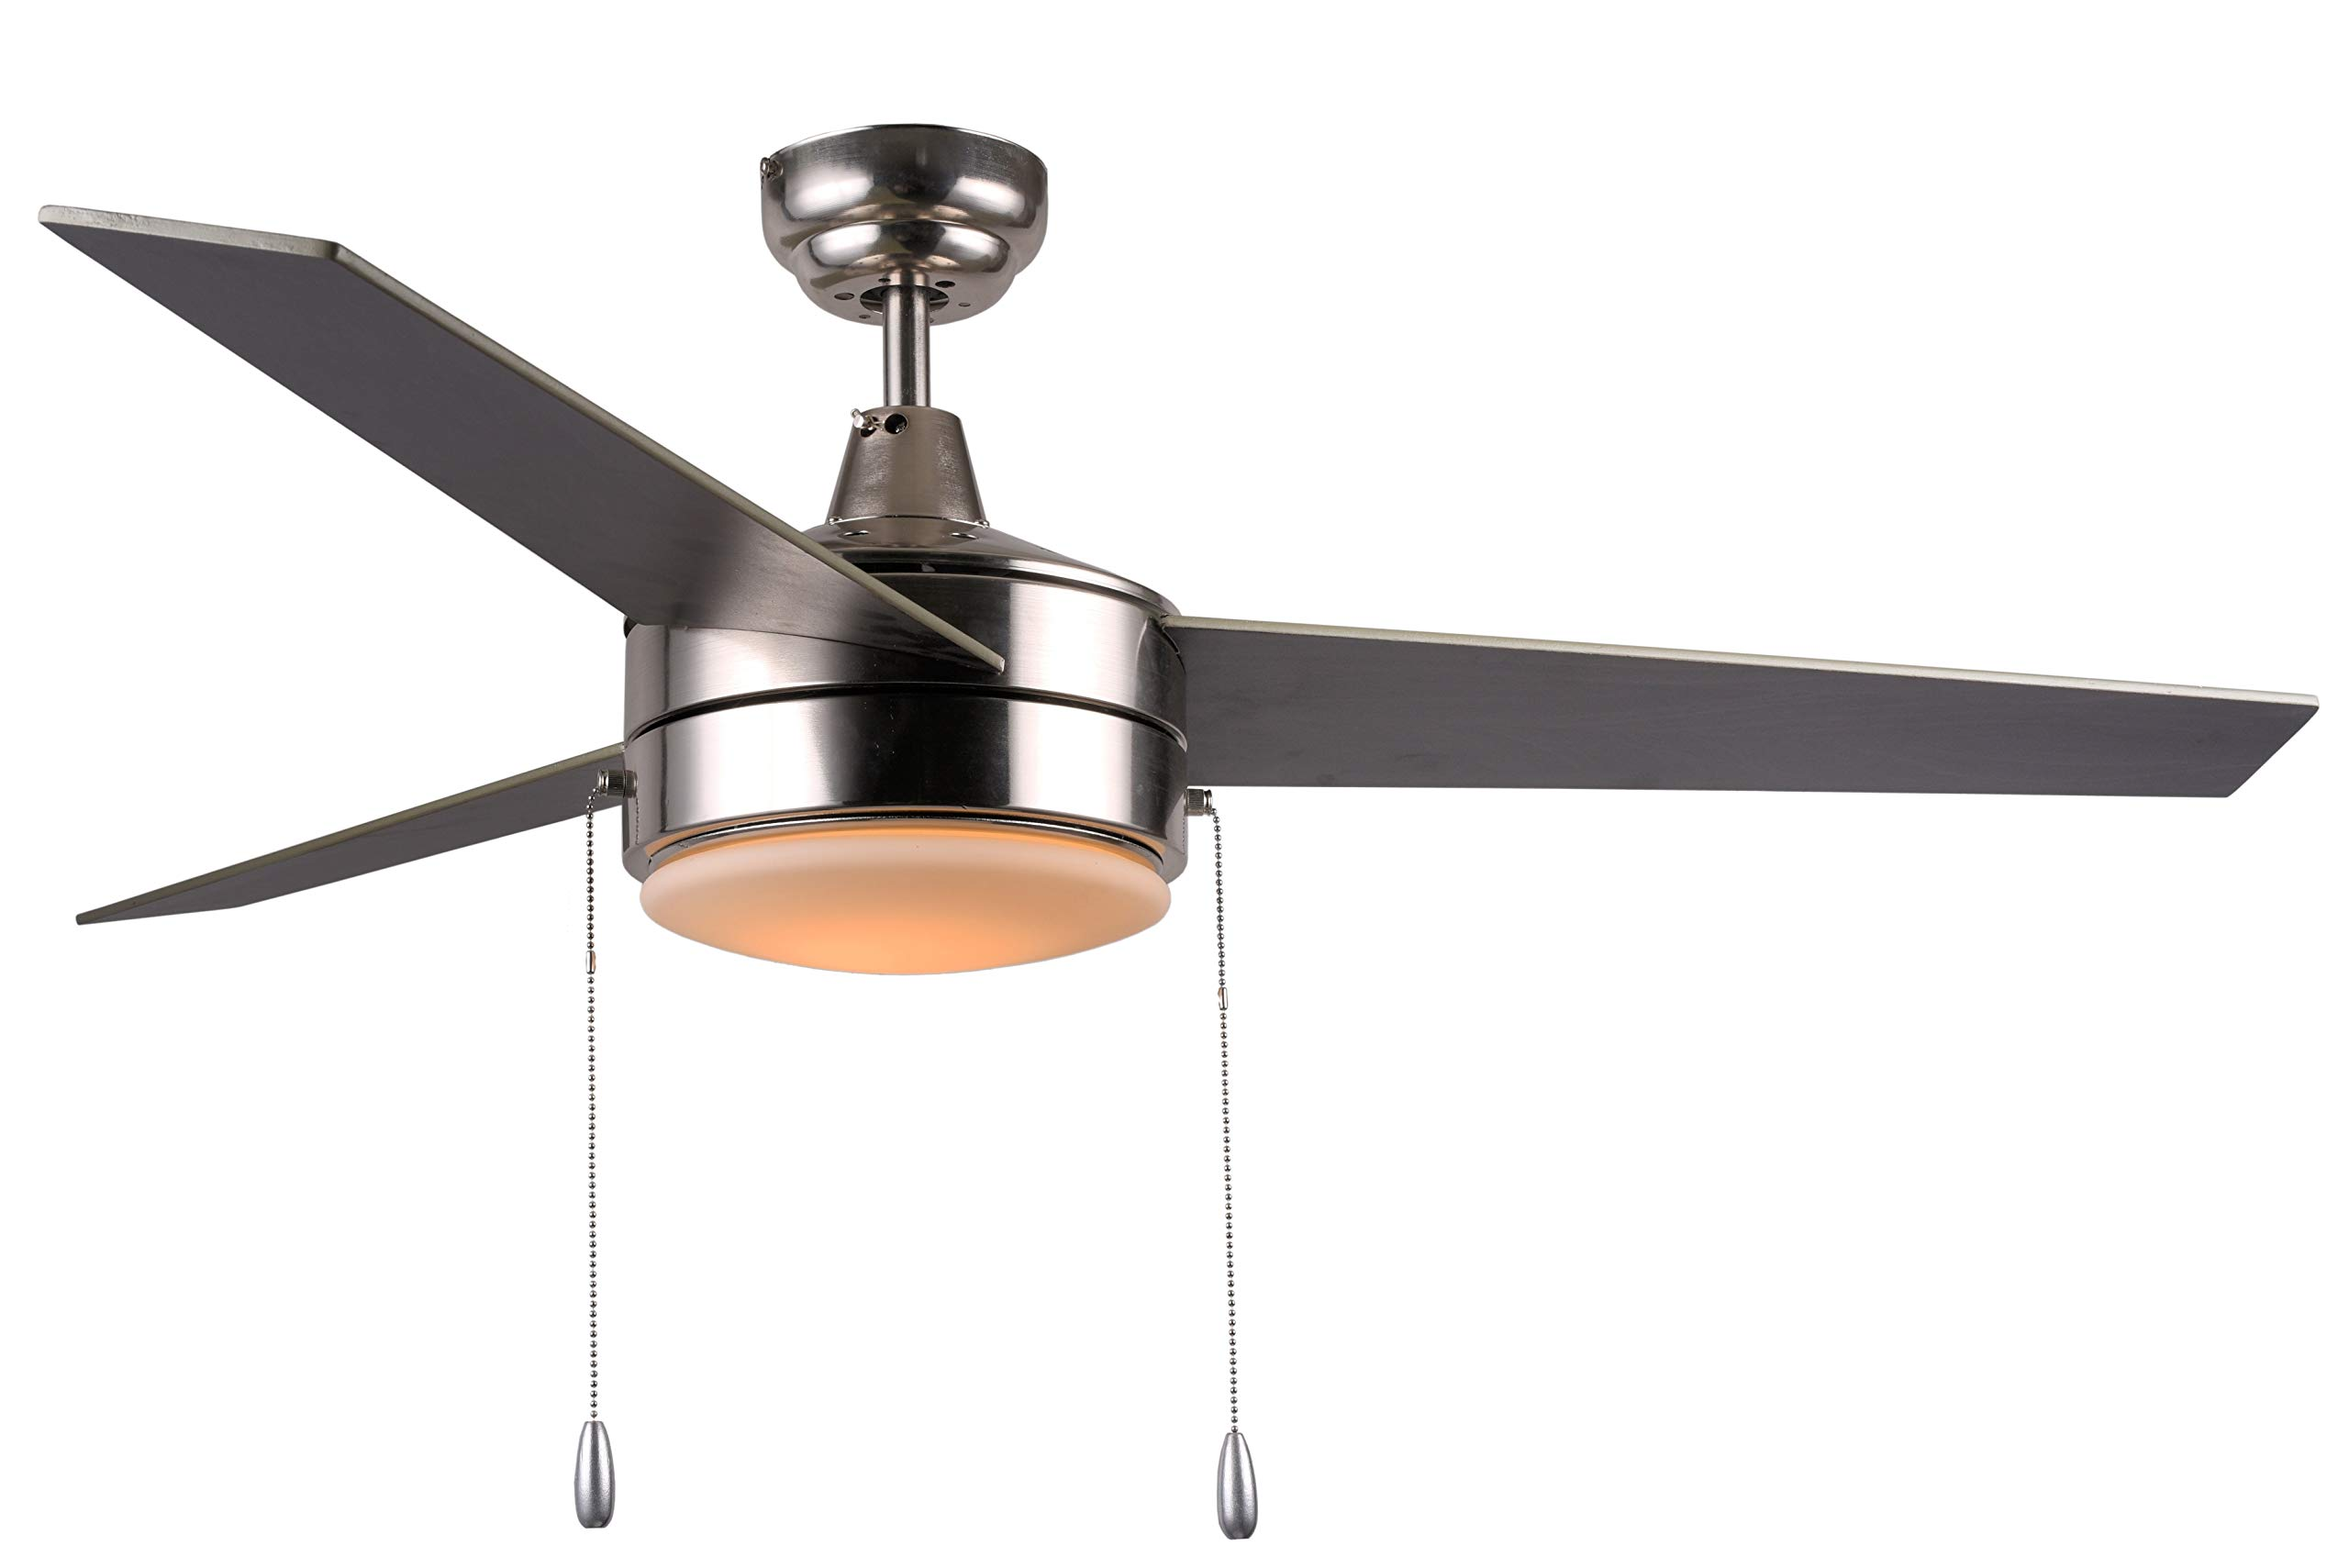 Hauslane CF3000 52 inch Modern 3 Blade Ceiling Fan with Lights | Bright LED Lamp and Three Reversible Blades | Suitable for 350 Sq Ft Room, Brushed Nickel Finish